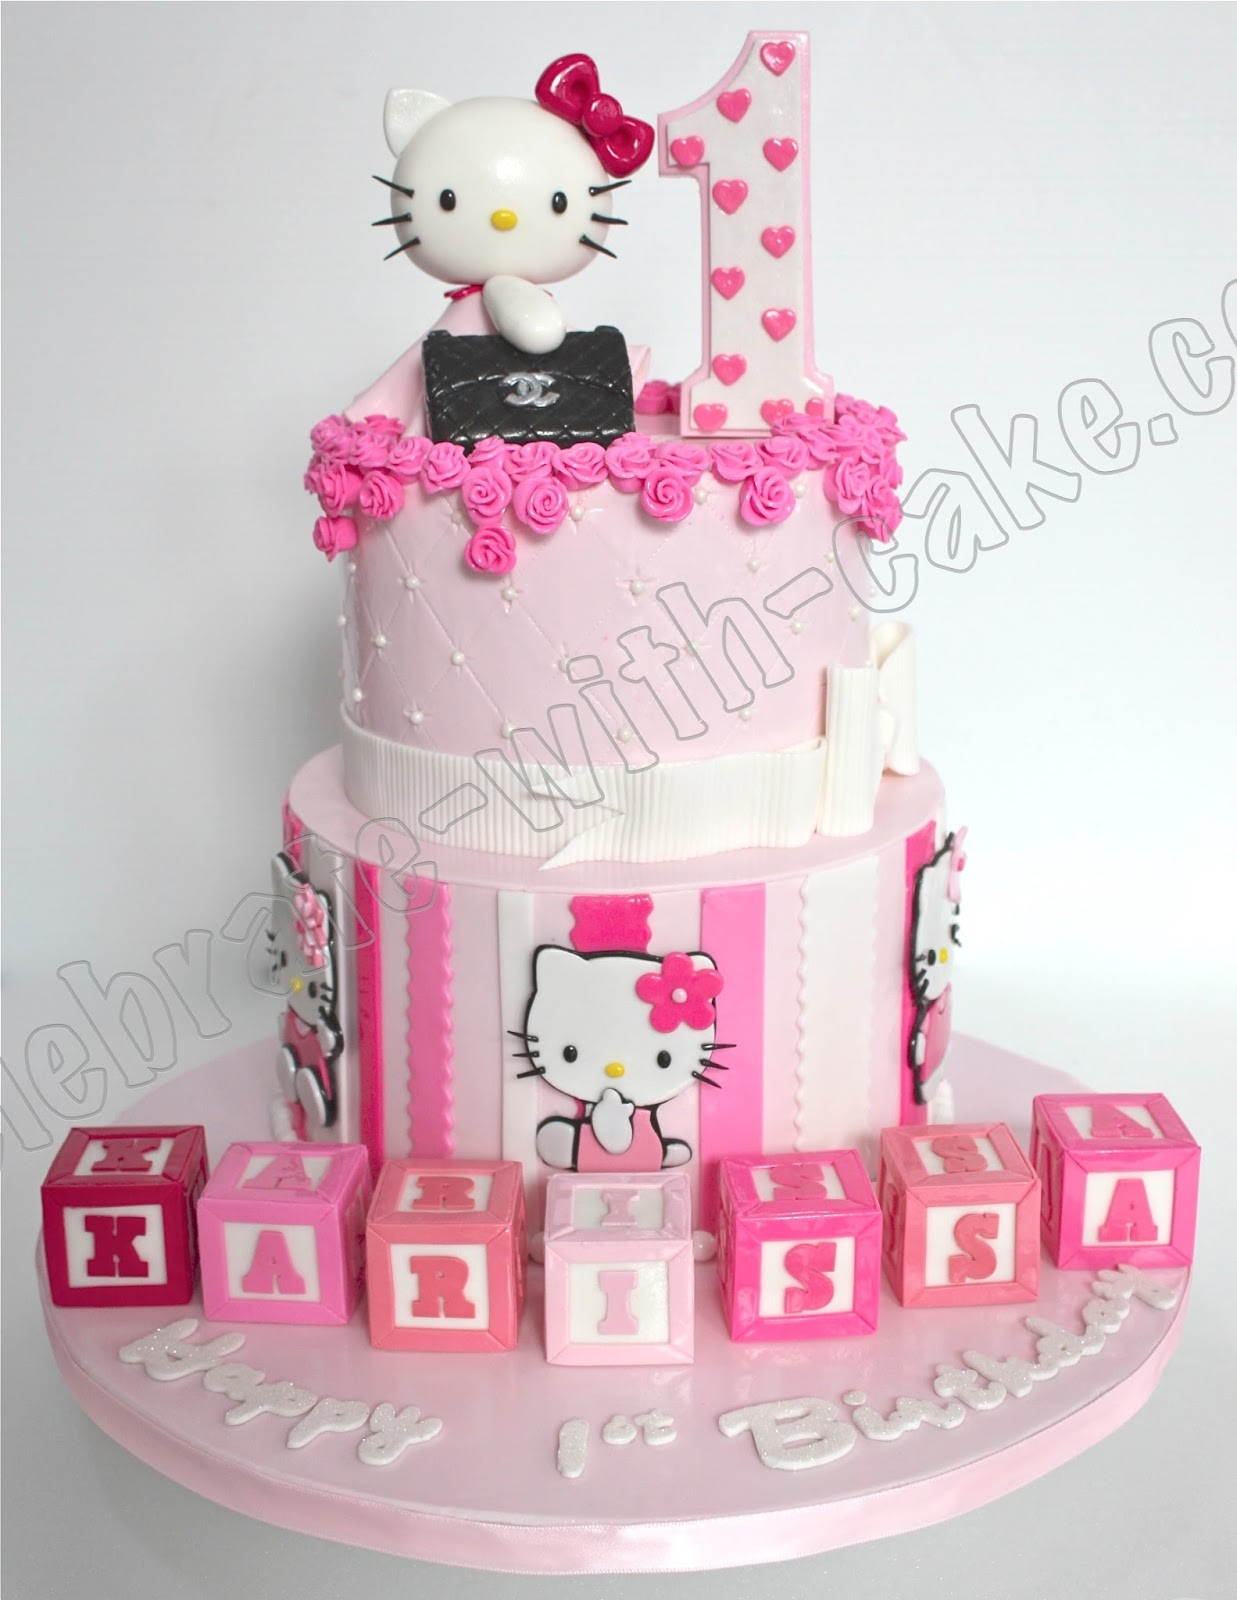 Celebrate with Cake Hello Kitty Chanel Bag Tier Cake